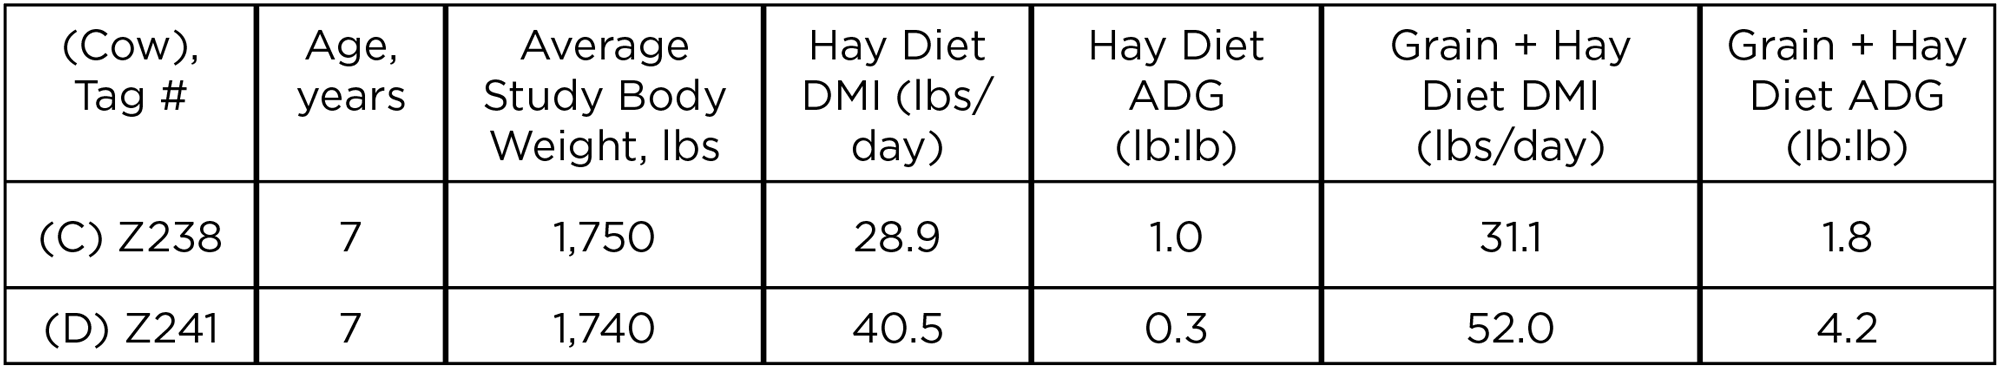 Infographic table showing dry matter intake (DMI) and average daily gain (ADG) from two cows